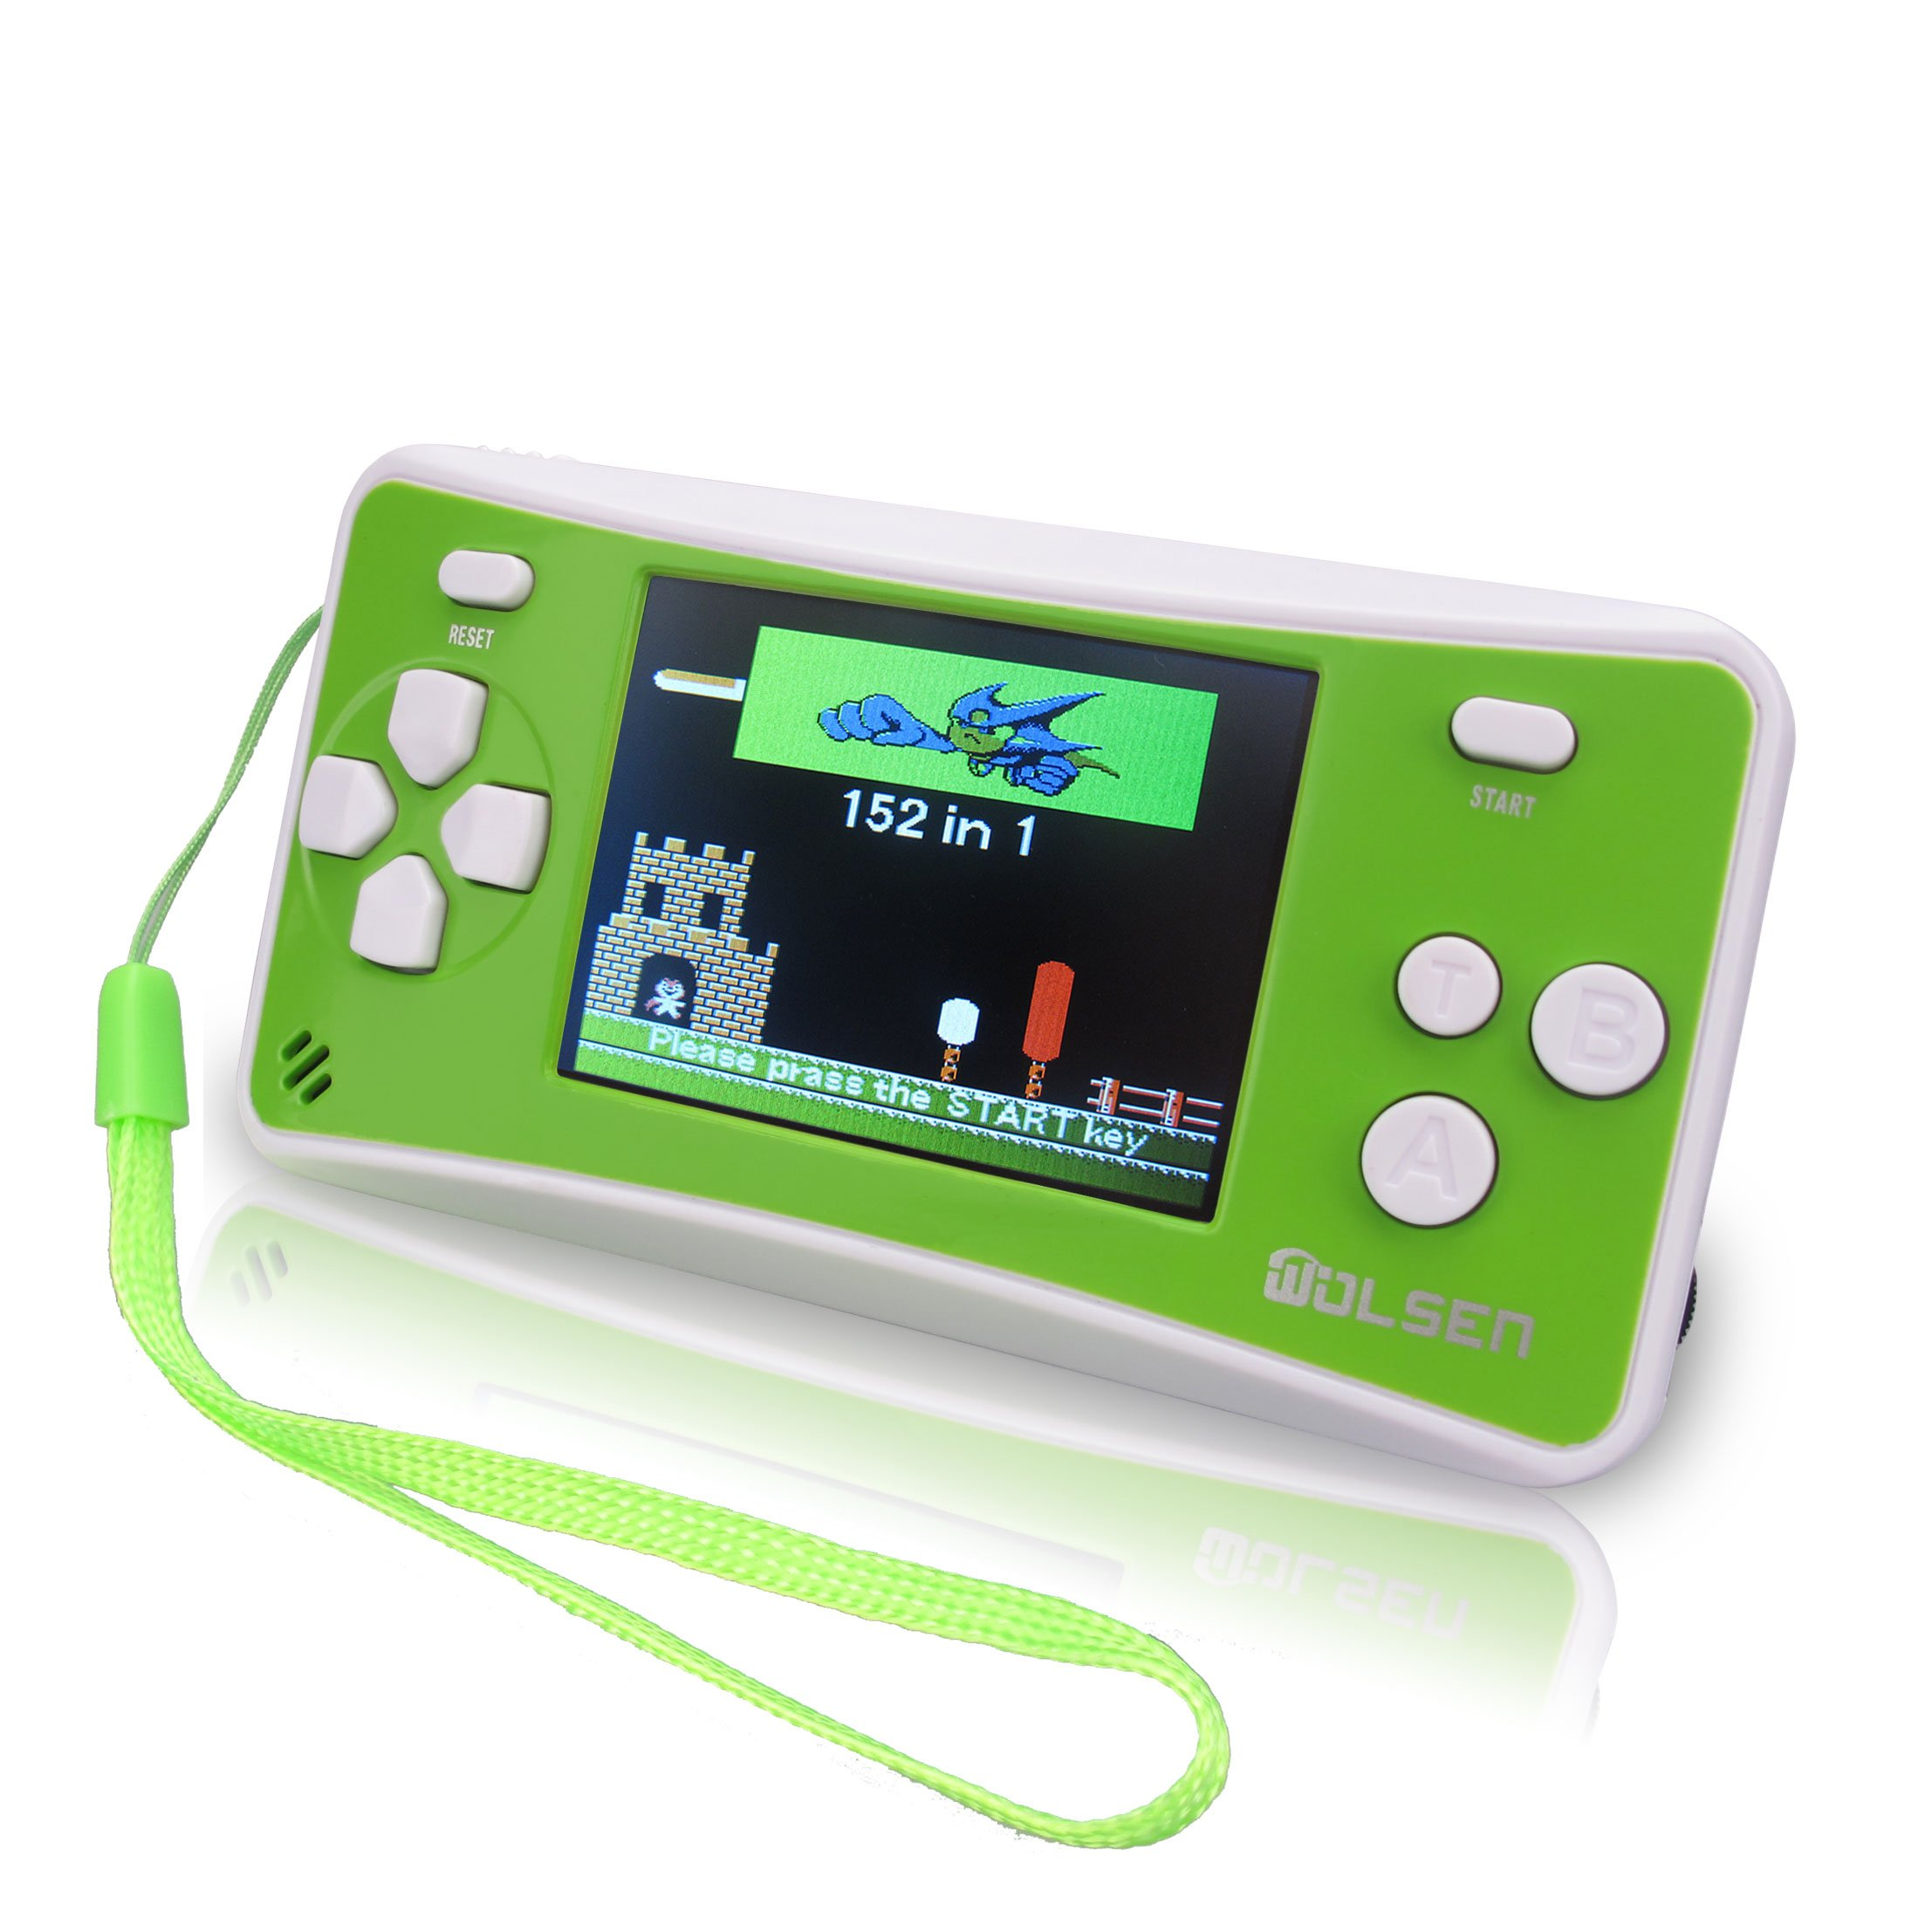 Dreamgear Handheld Portable Arcade Video